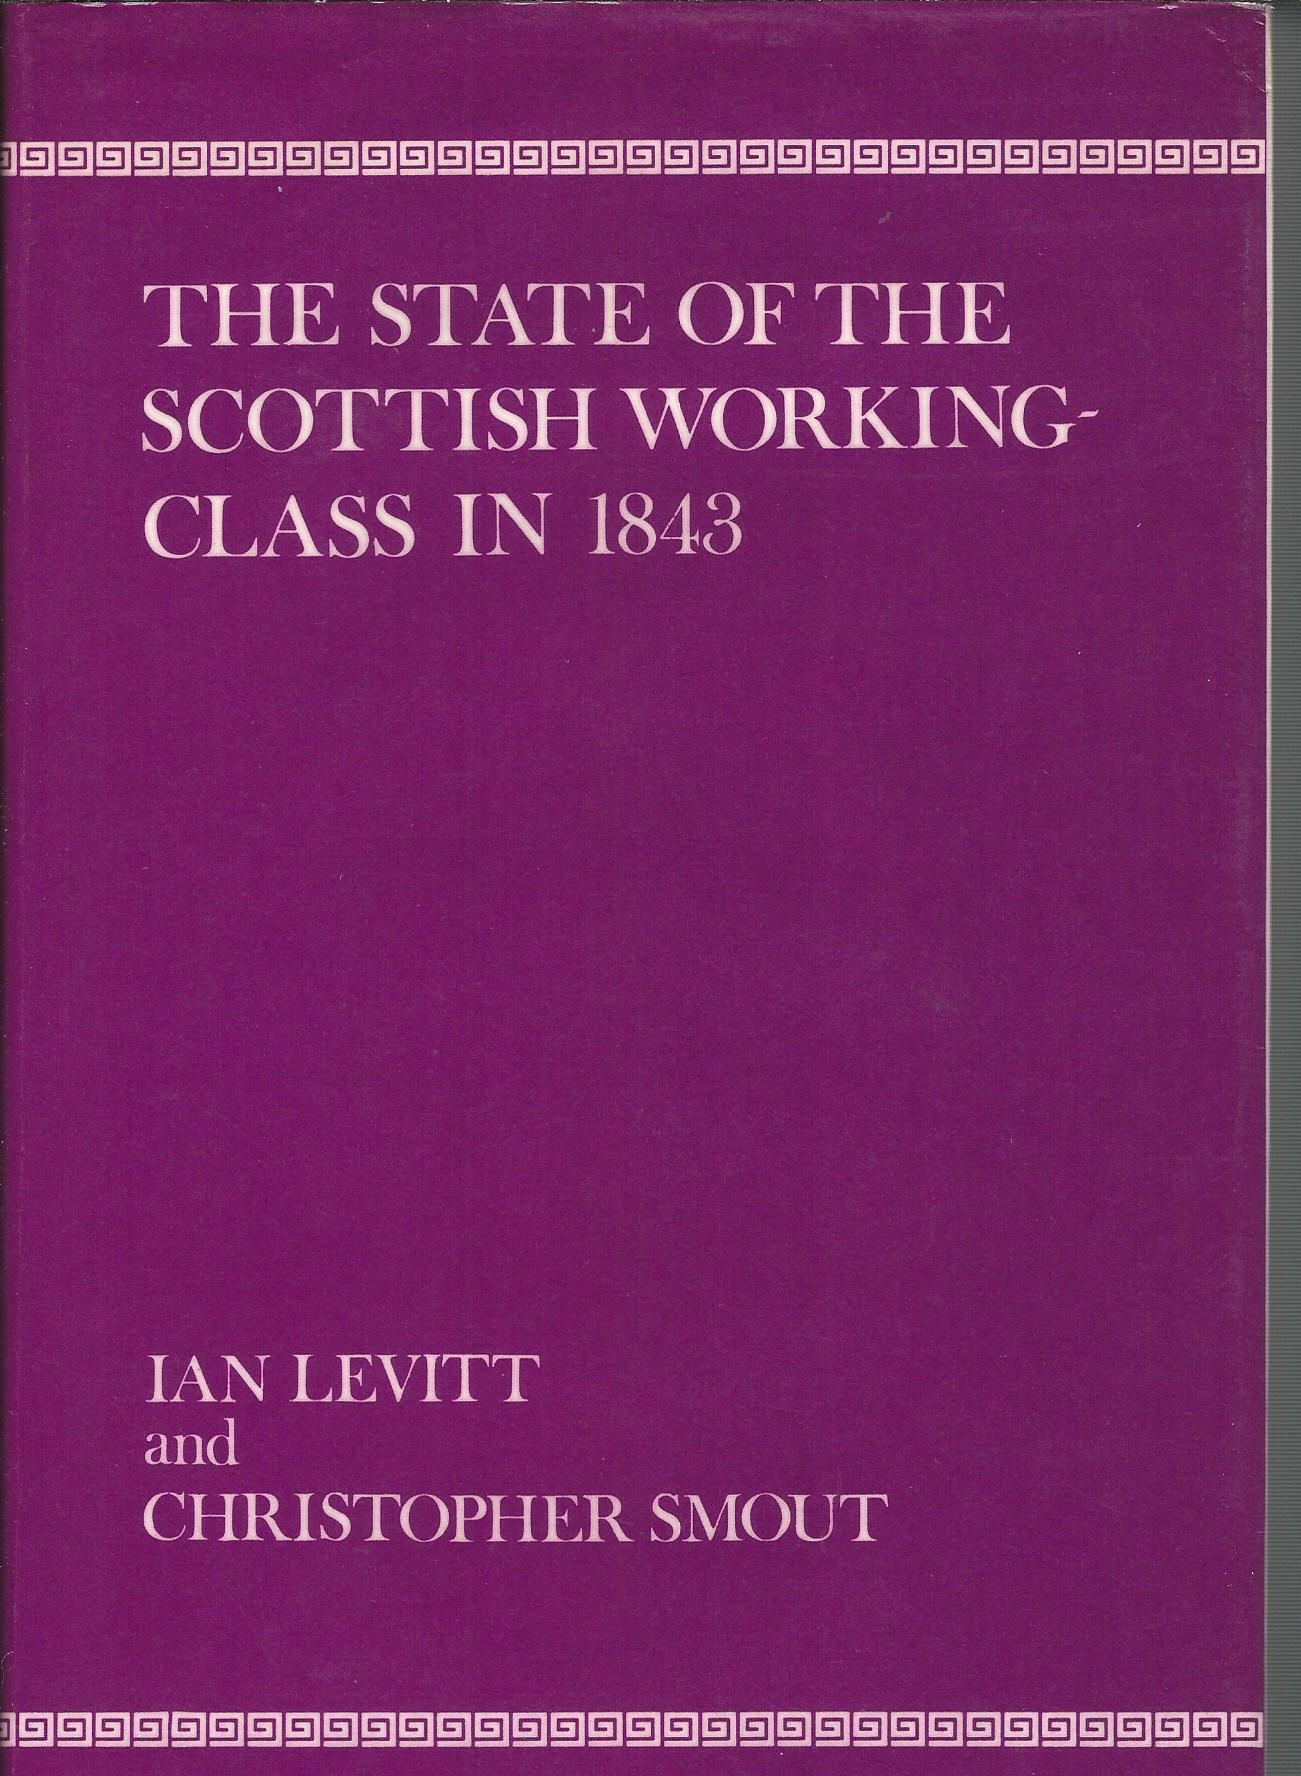 Image for The State of the Scottish working-class in 1843: A statistical and spatial enquiry based on the data from the Poor Law Commission Report of 1844.